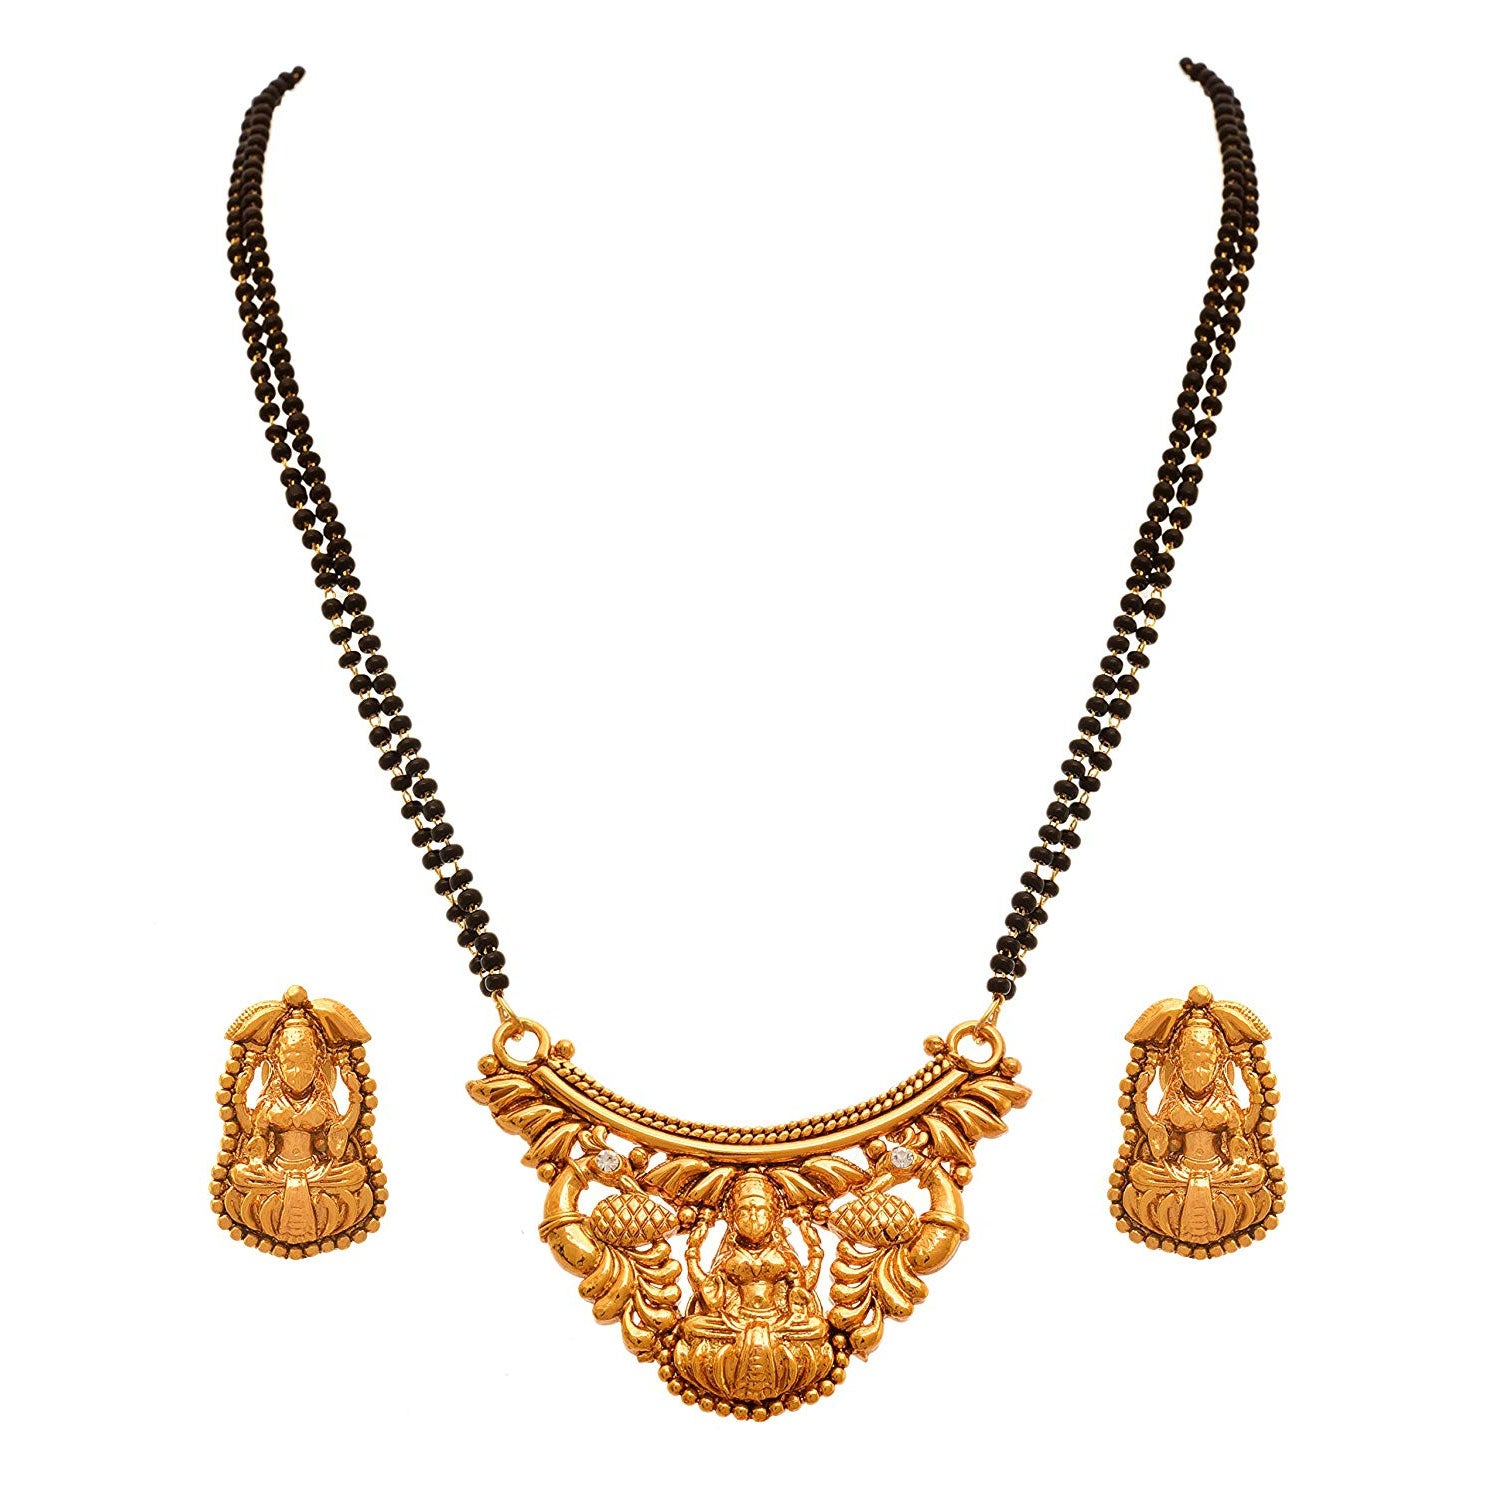 JFL - Jewellery for Less Traditional Ethnic One Gram Gold Plated Goddess Laxmi Peacock Designer Mangalsutra Jewellery Set with Earring for Women